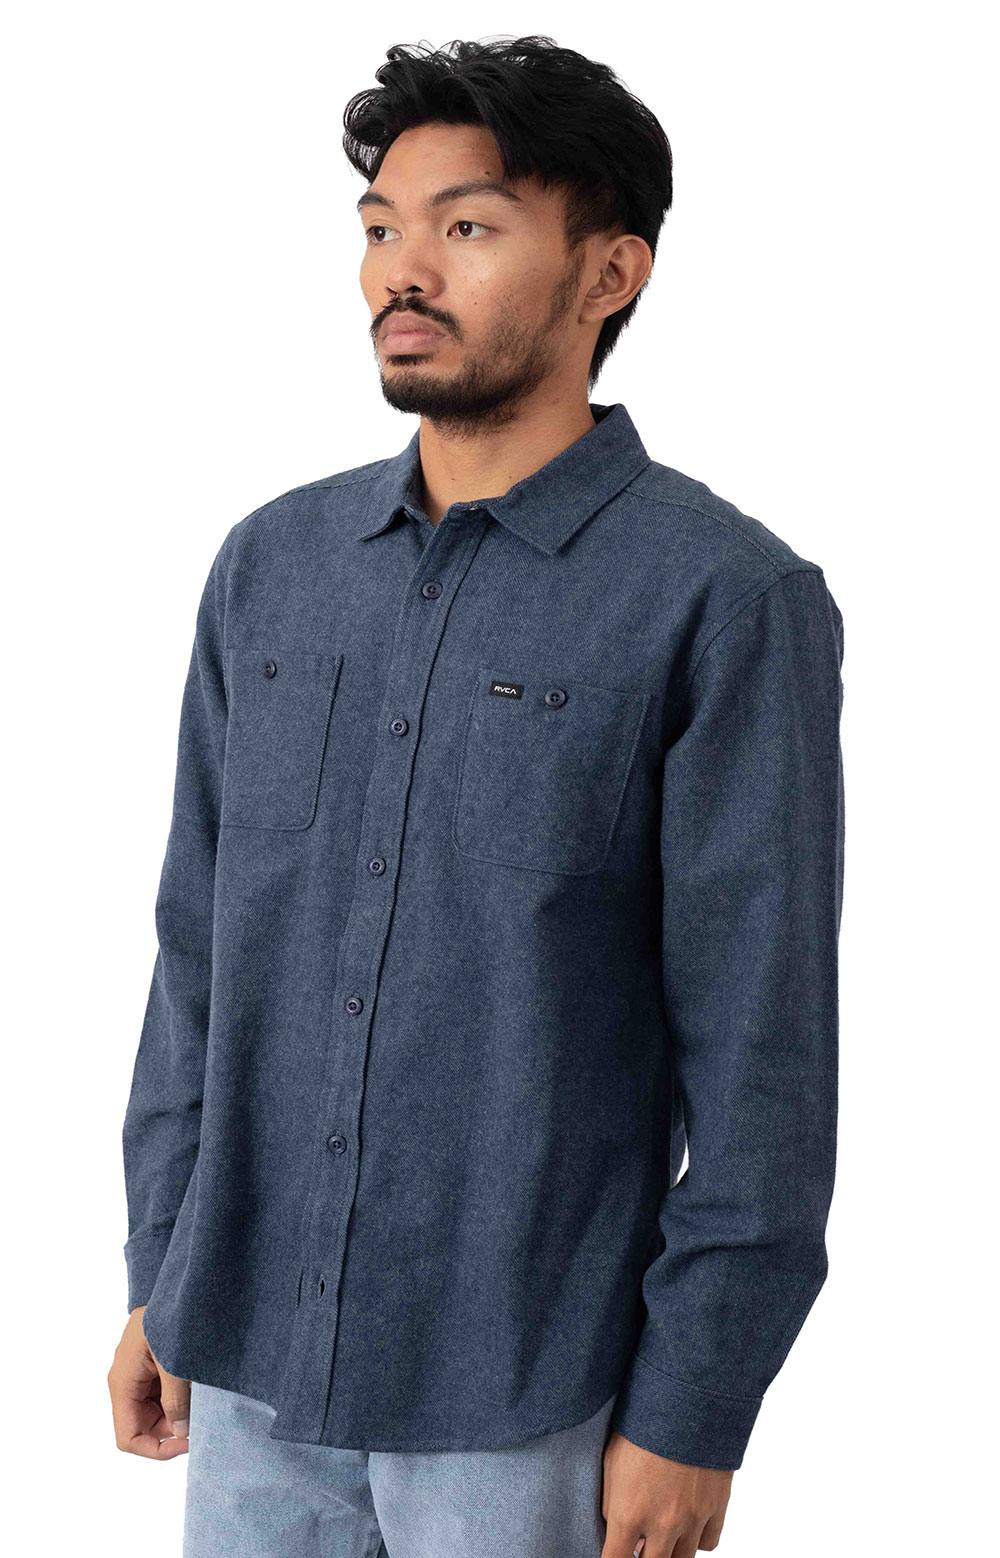 Harvest Button-Up Flannel Shirt - Moody Blue  2